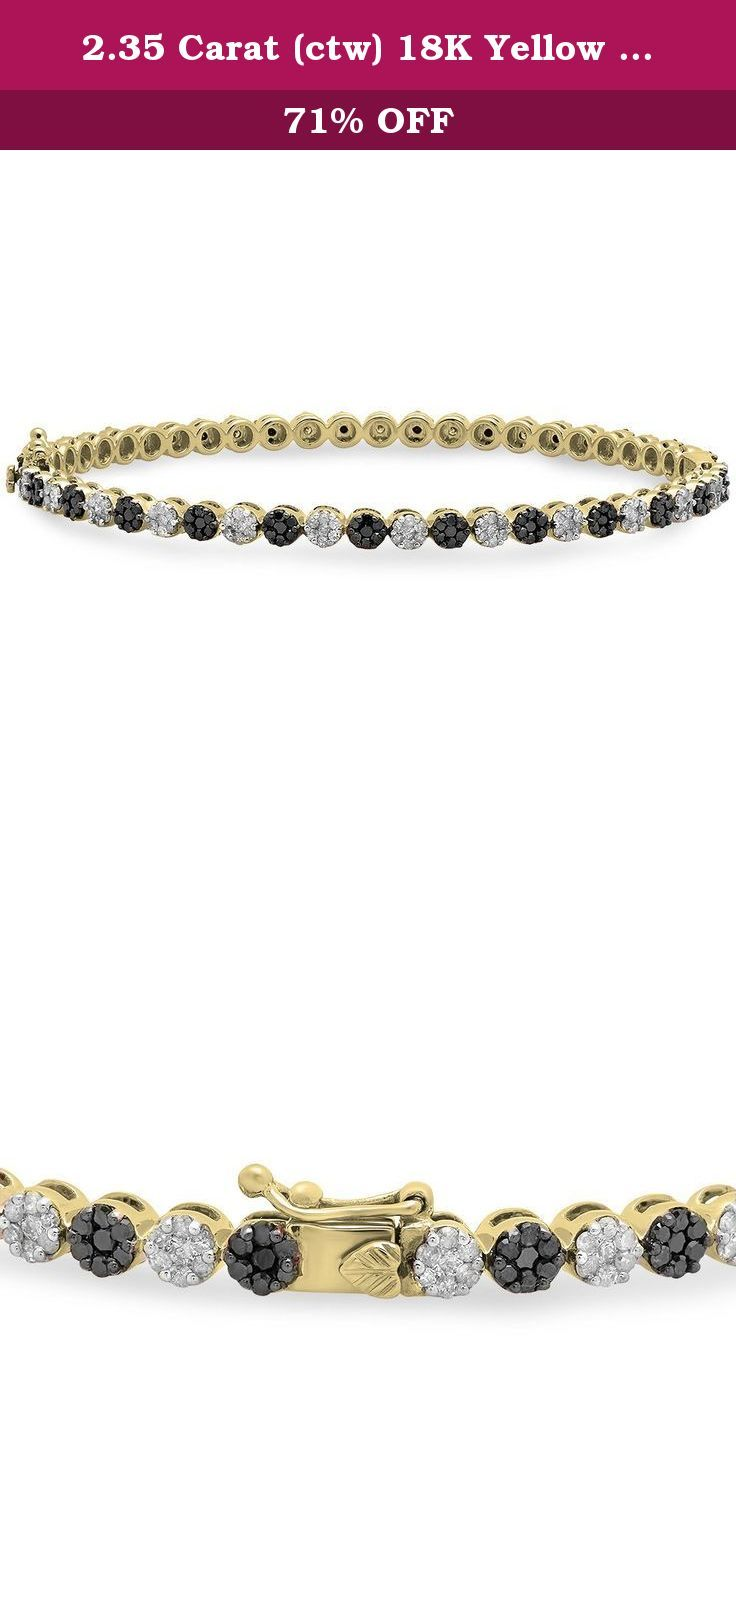 2.35 Carat (ctw) 18K Yellow Gold Black & White Diamond Prong set Ladies Fashion Bangle Bracelet 2 1/3 CT. This lovely diamond bracelet feature 2.35 ct black & white diamonds in prong setting. All diamonds are sparkling and 100% natural. All our products with FREE gift box and 100% Satisfaction guarantee. The Black Diamonds may have one or two small chips and or white spots. The black diamonds in this item are semi-faceted and natural. These black diamonds qualify as rose-cut or diamond...